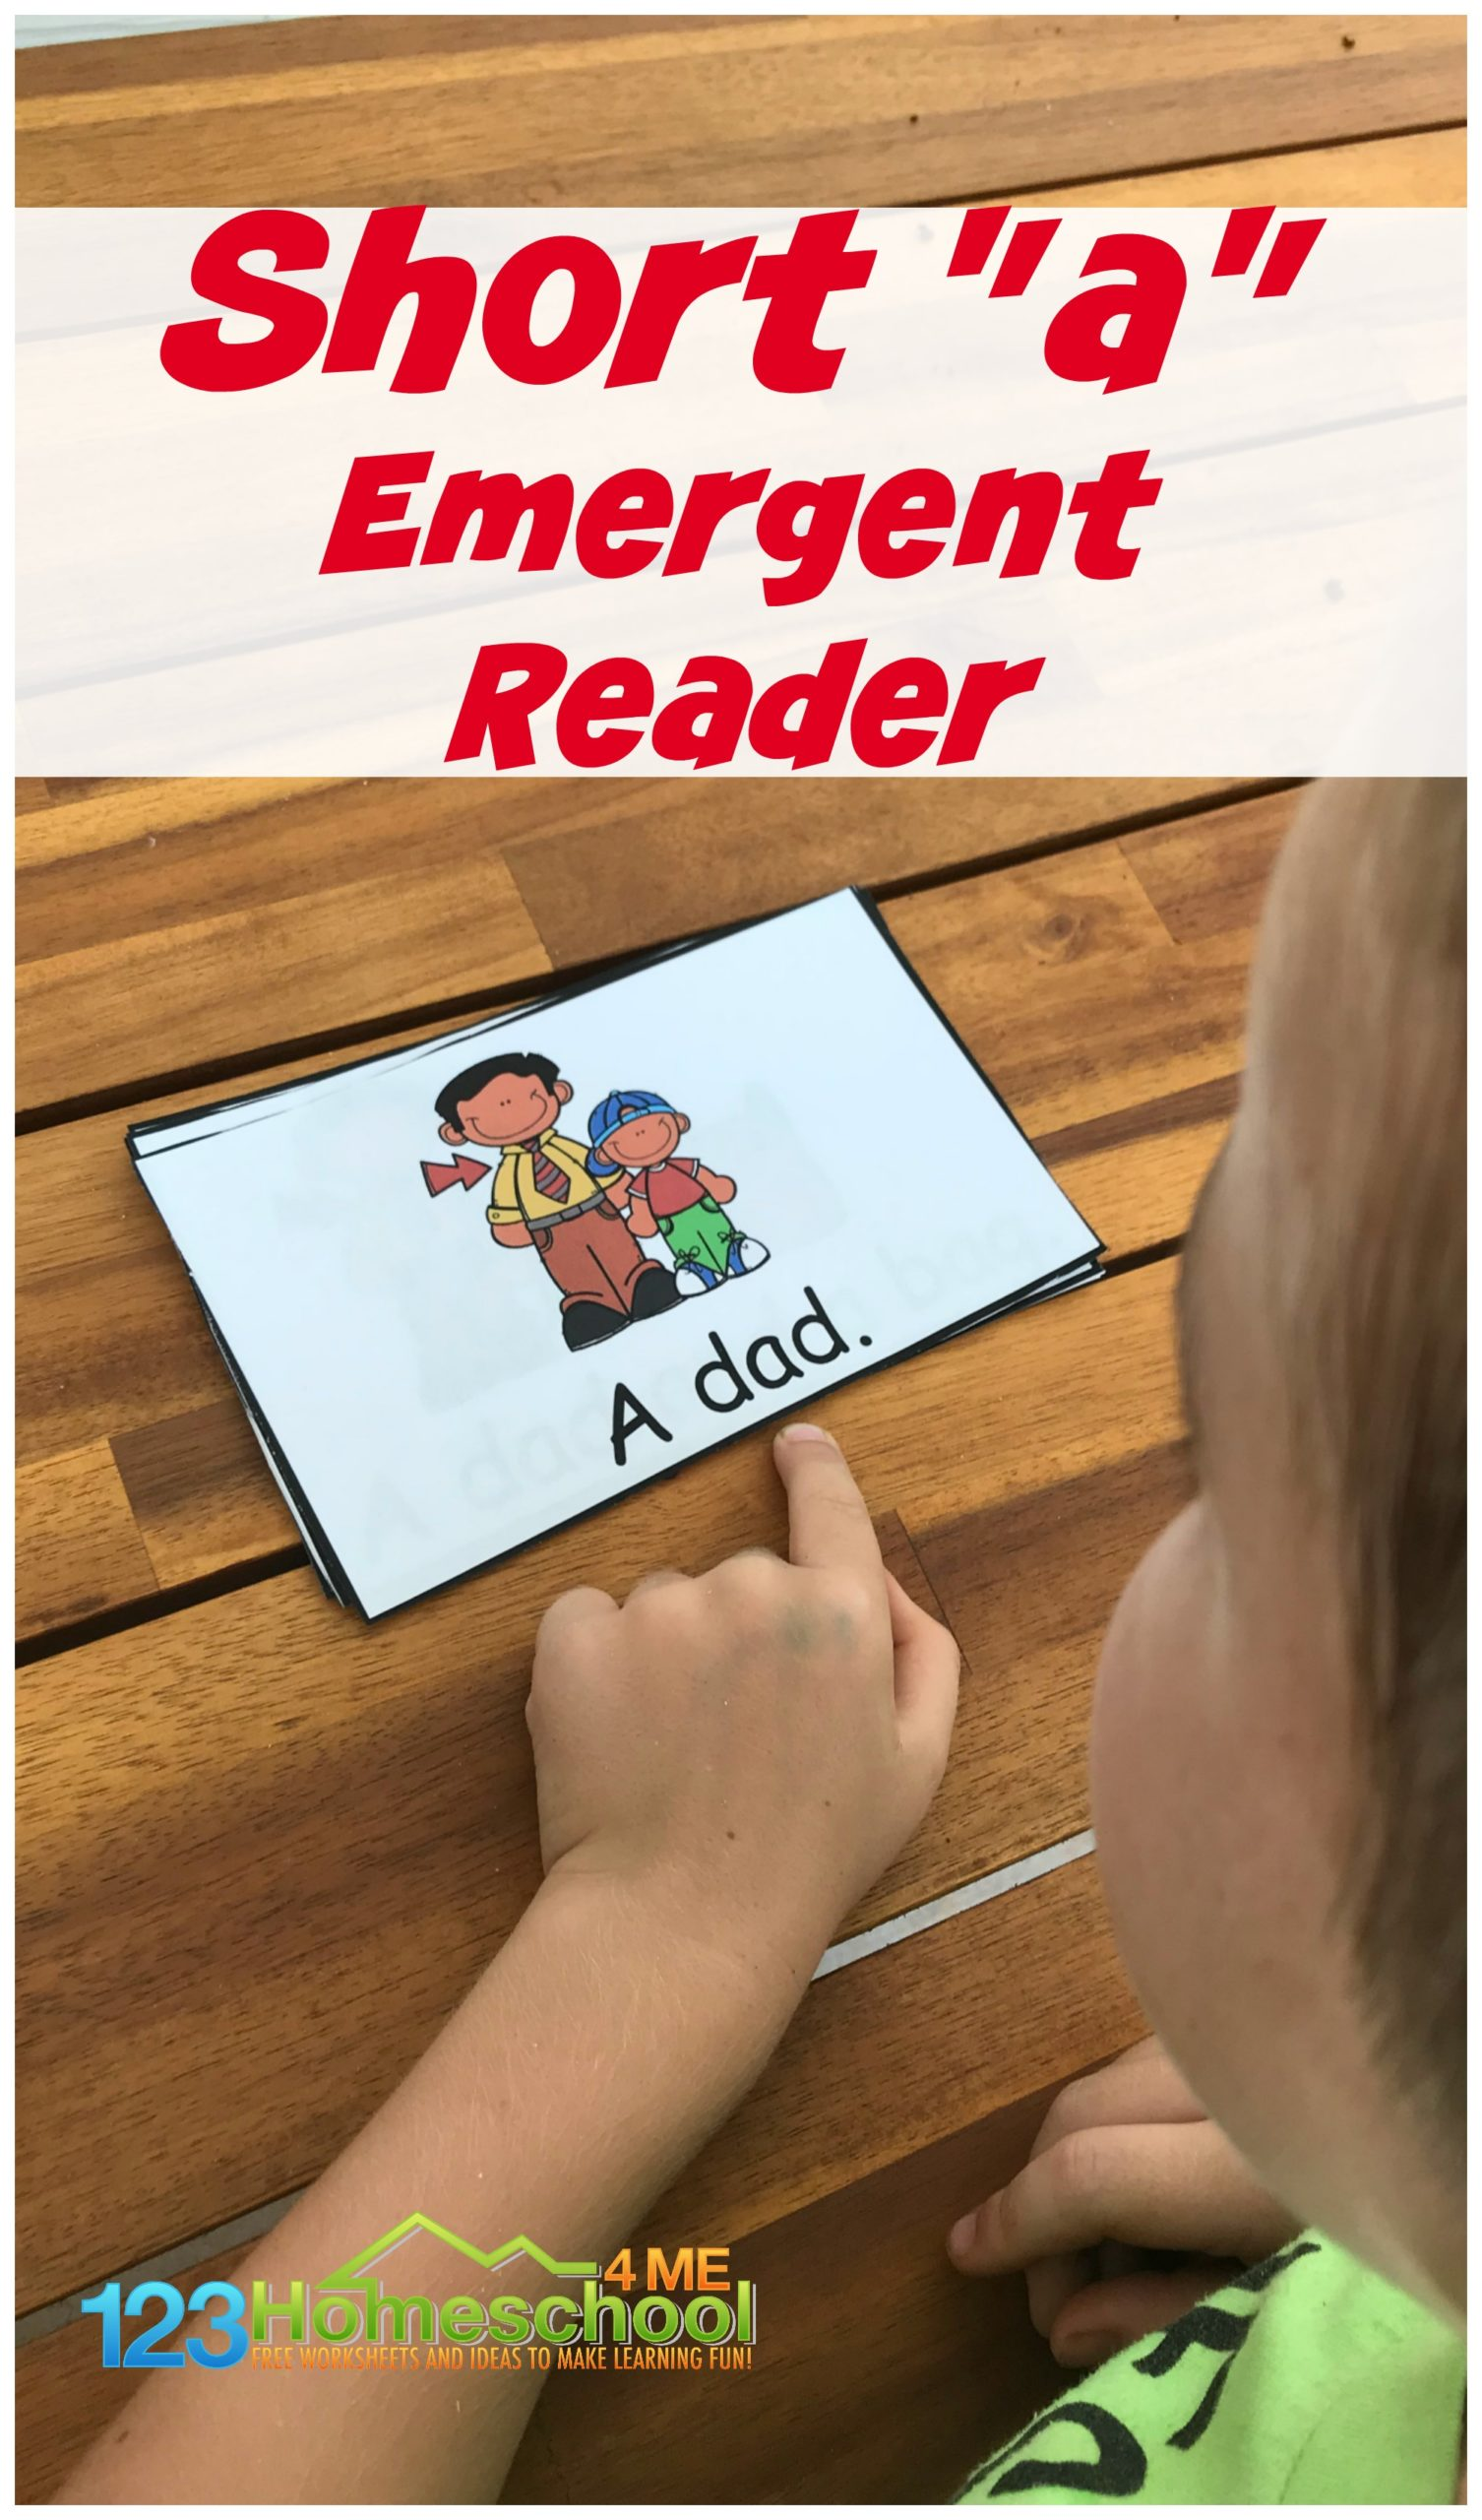 FREE Short a Words Emergent Reader - Beginning readers need lots of practice reading word family words and sight words. This free printable, short a words emergent reader is a great way for pre k, kindergarten, and first graders to gain fuency and confidence reading.